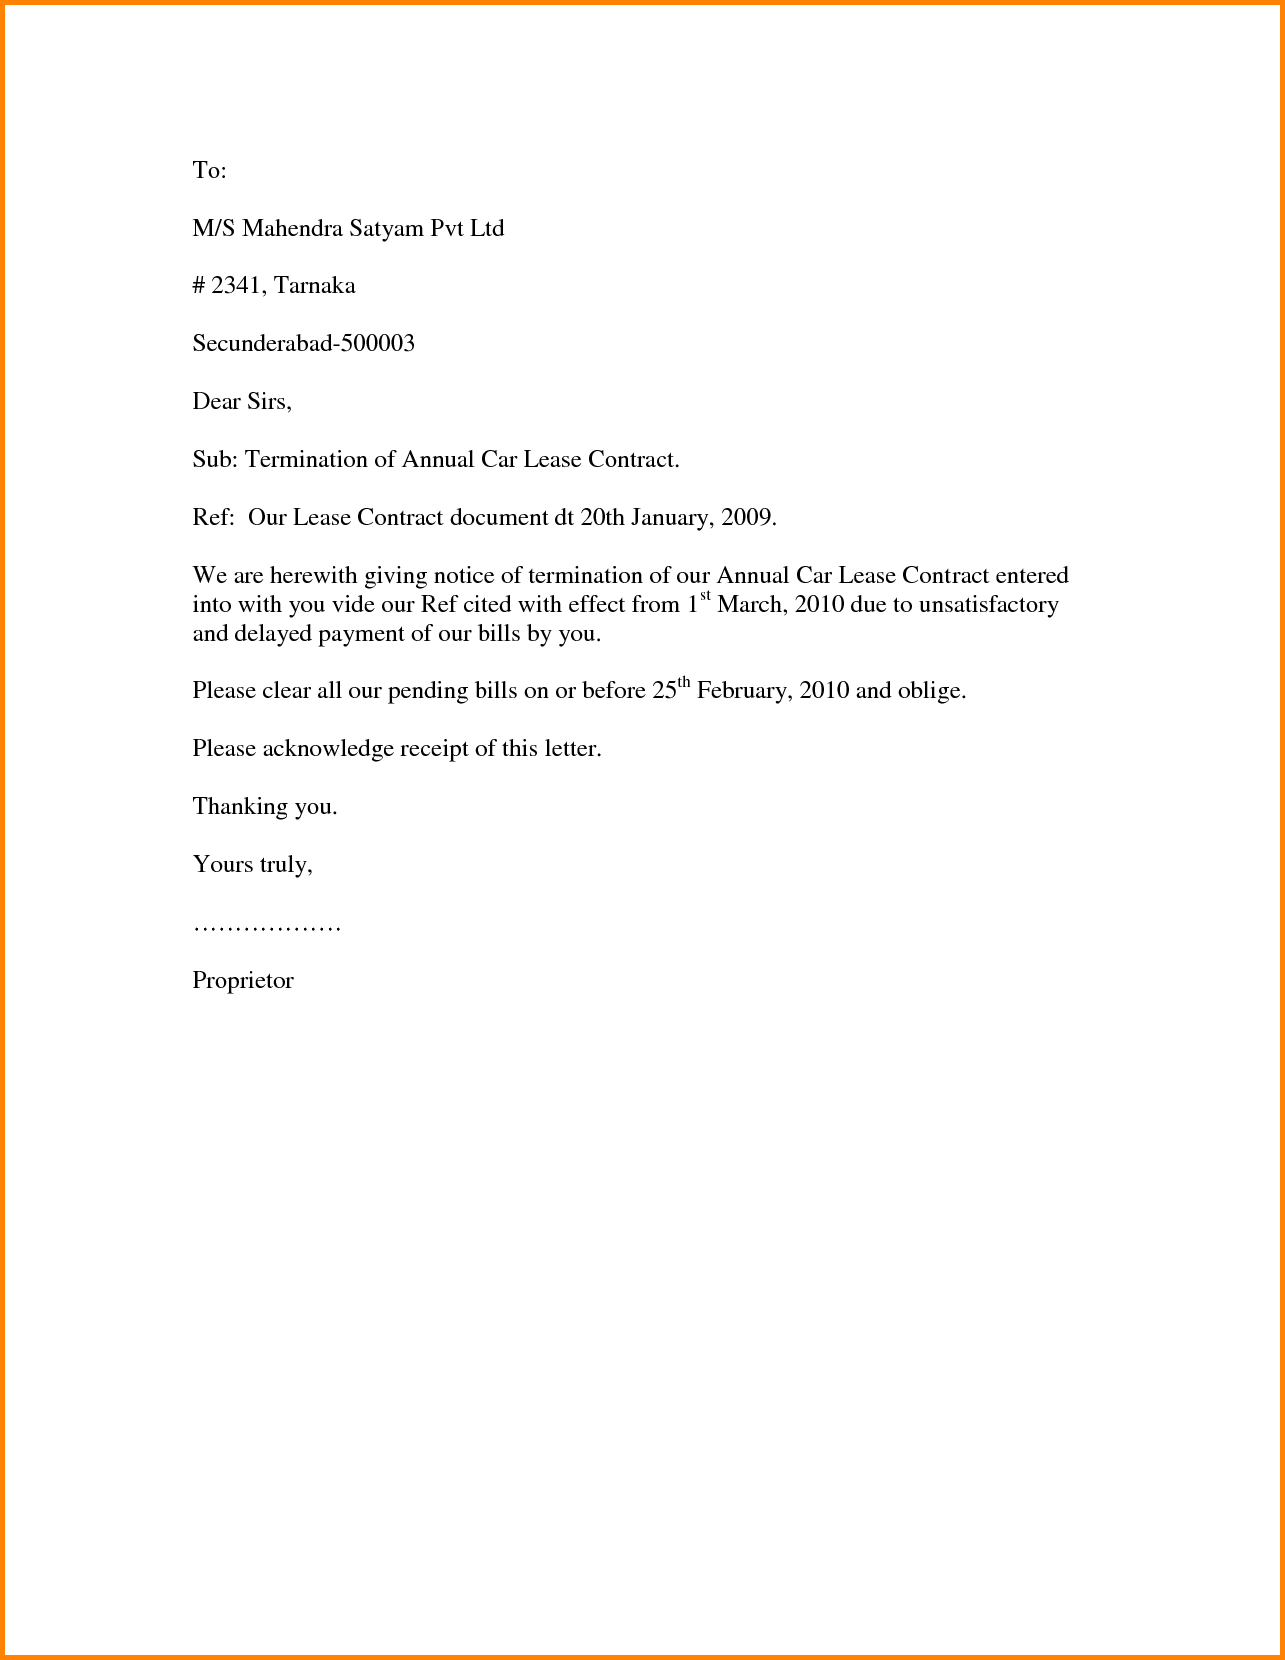 Housing Reference Letter Template - How to End Letters How to End A Resignation Letter Fancy Resume How